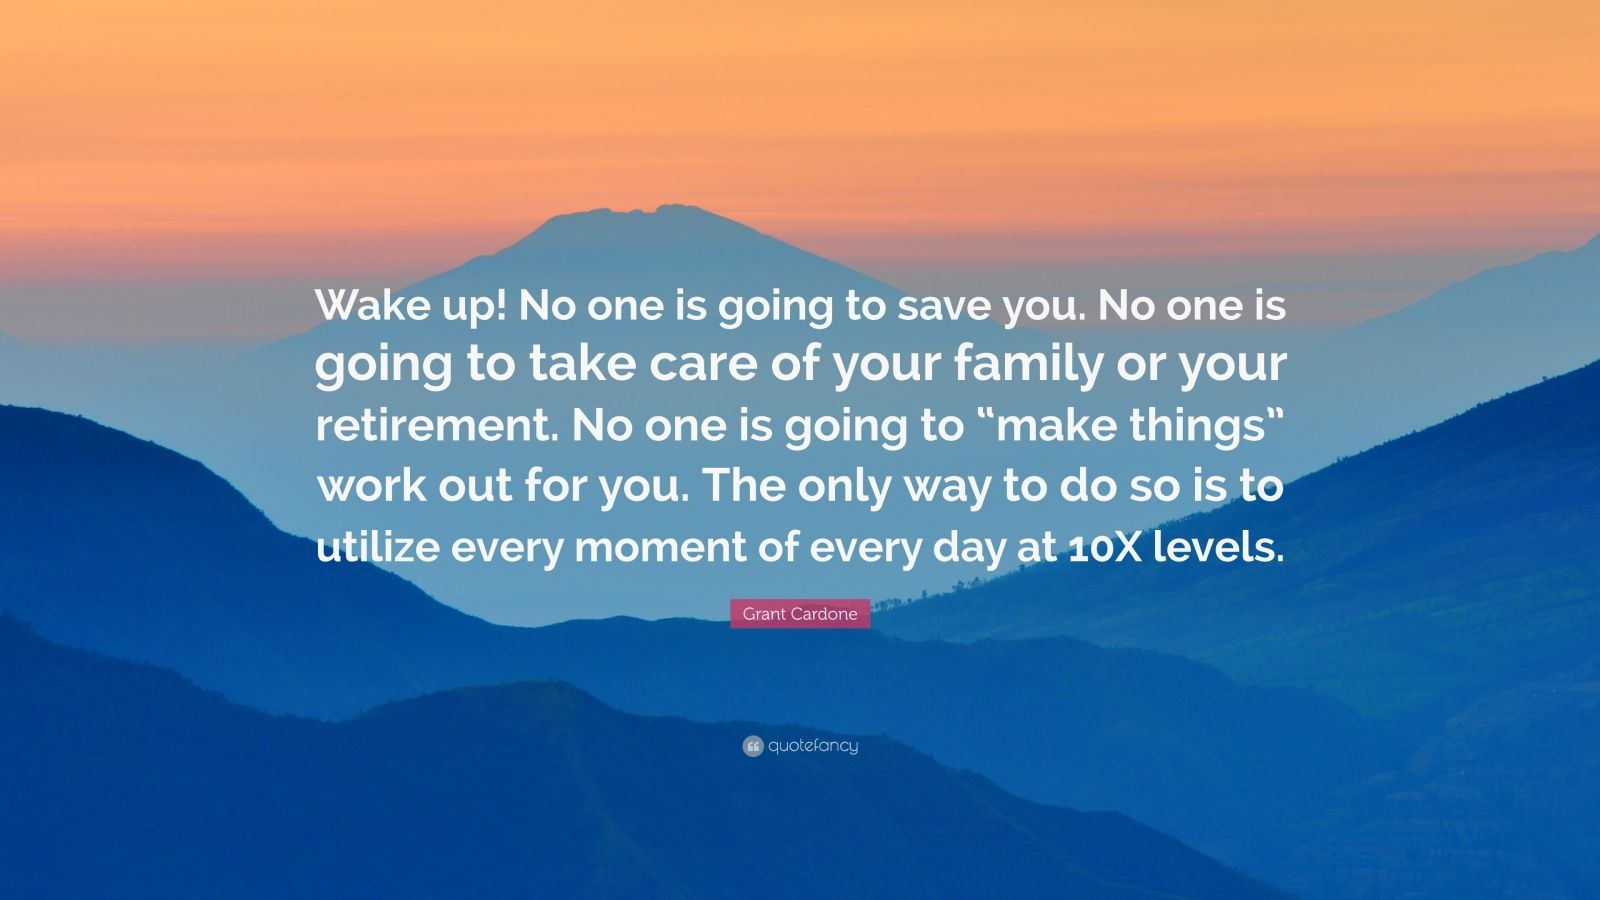 "Grant Cardone Quote: ""Wake up! No one is going to save you. No one is going to take care of your family or your retirement. No one is going to ""make things"" work out for you. The only way to do so is to utilize every moment of every day at 10X levels."""